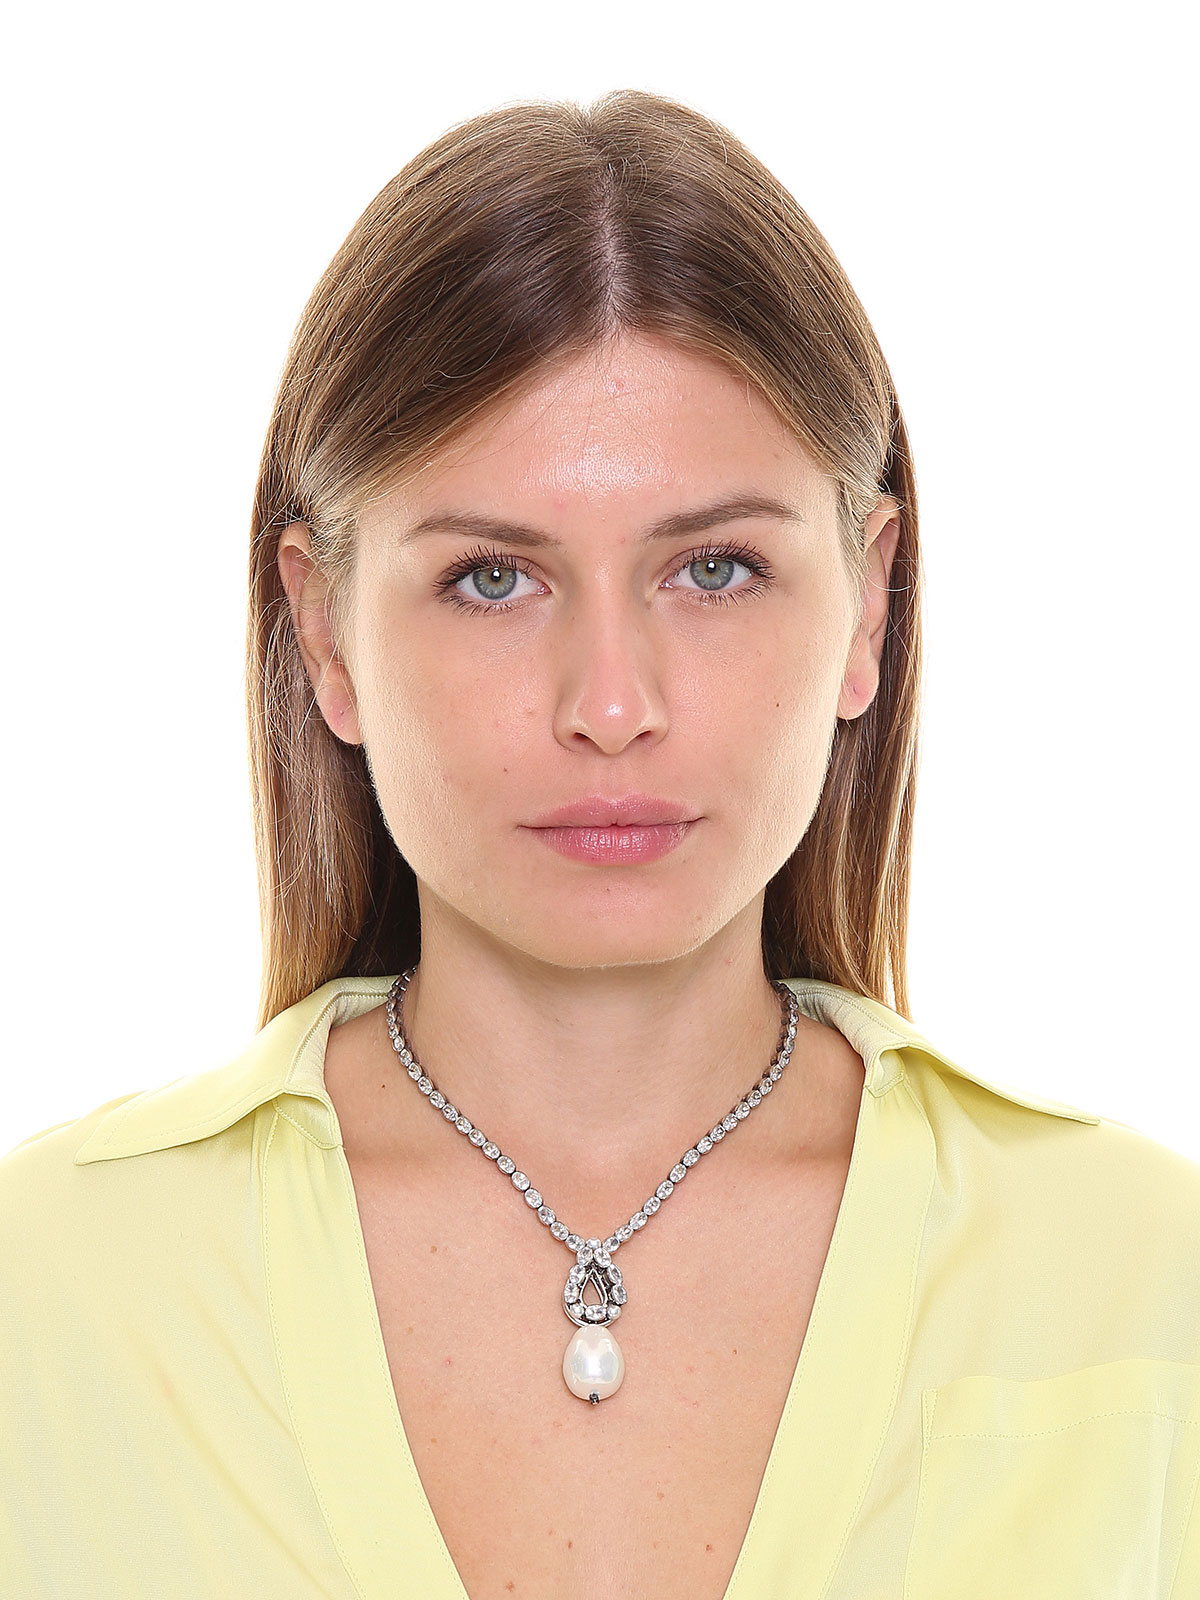 Crystal necklace with pendent drop